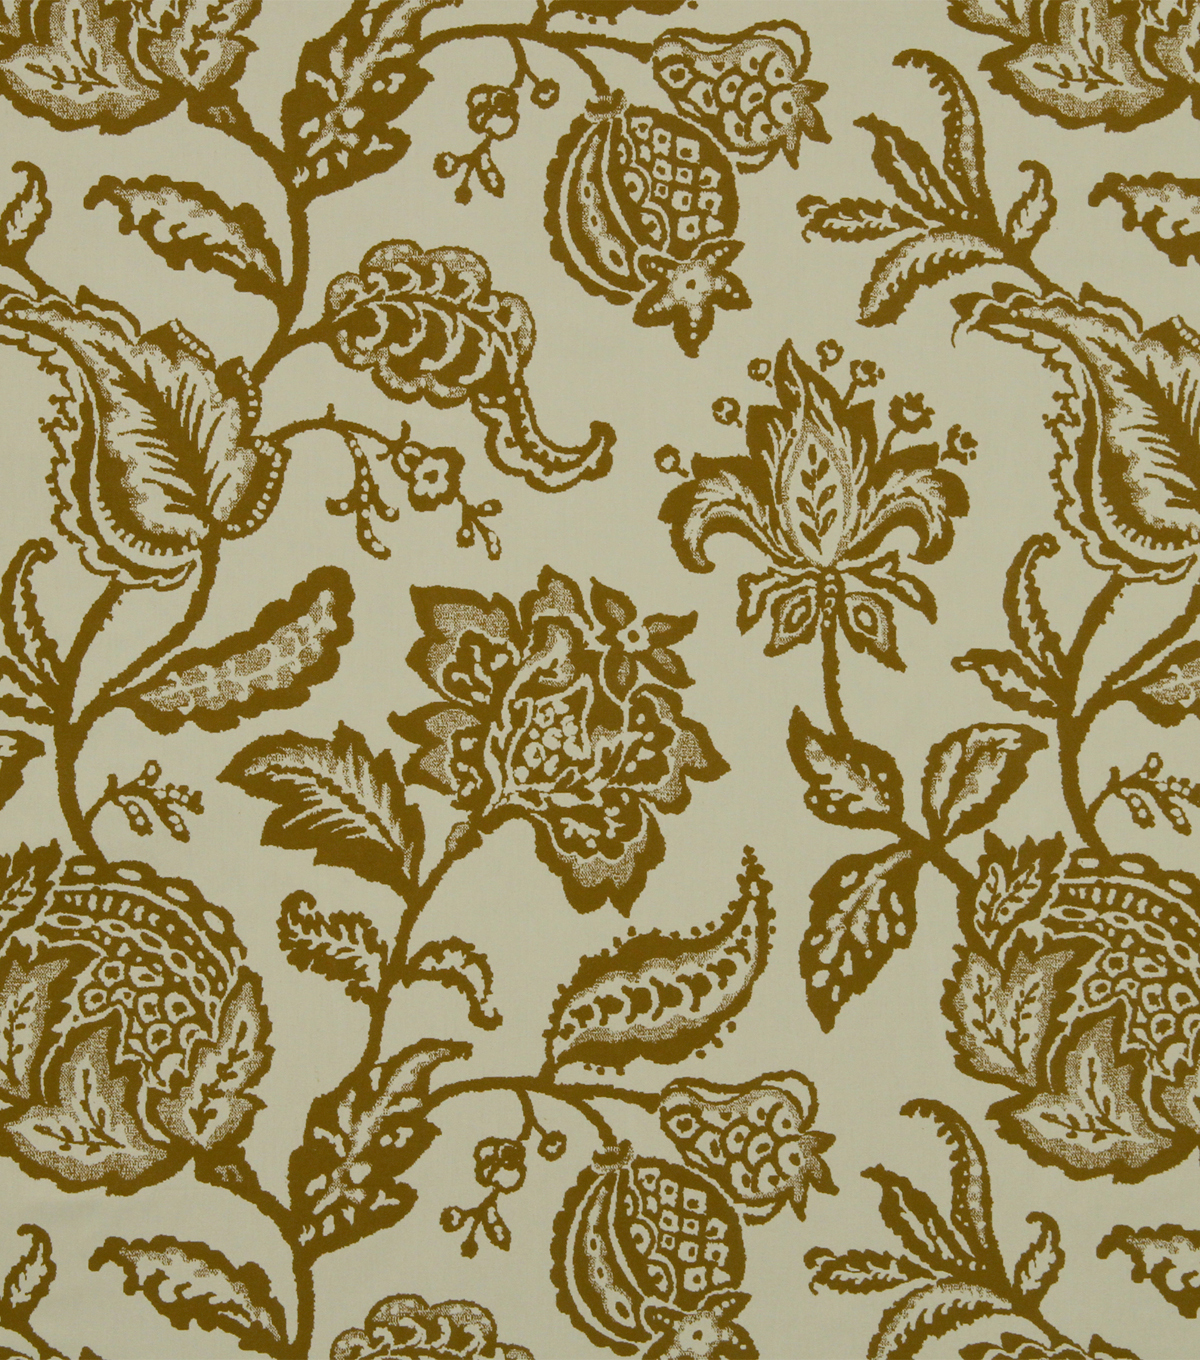 Home Decor 8\u0022x8\u0022 Fabric Swatch-Robert Allen Jacobean Toss Amber